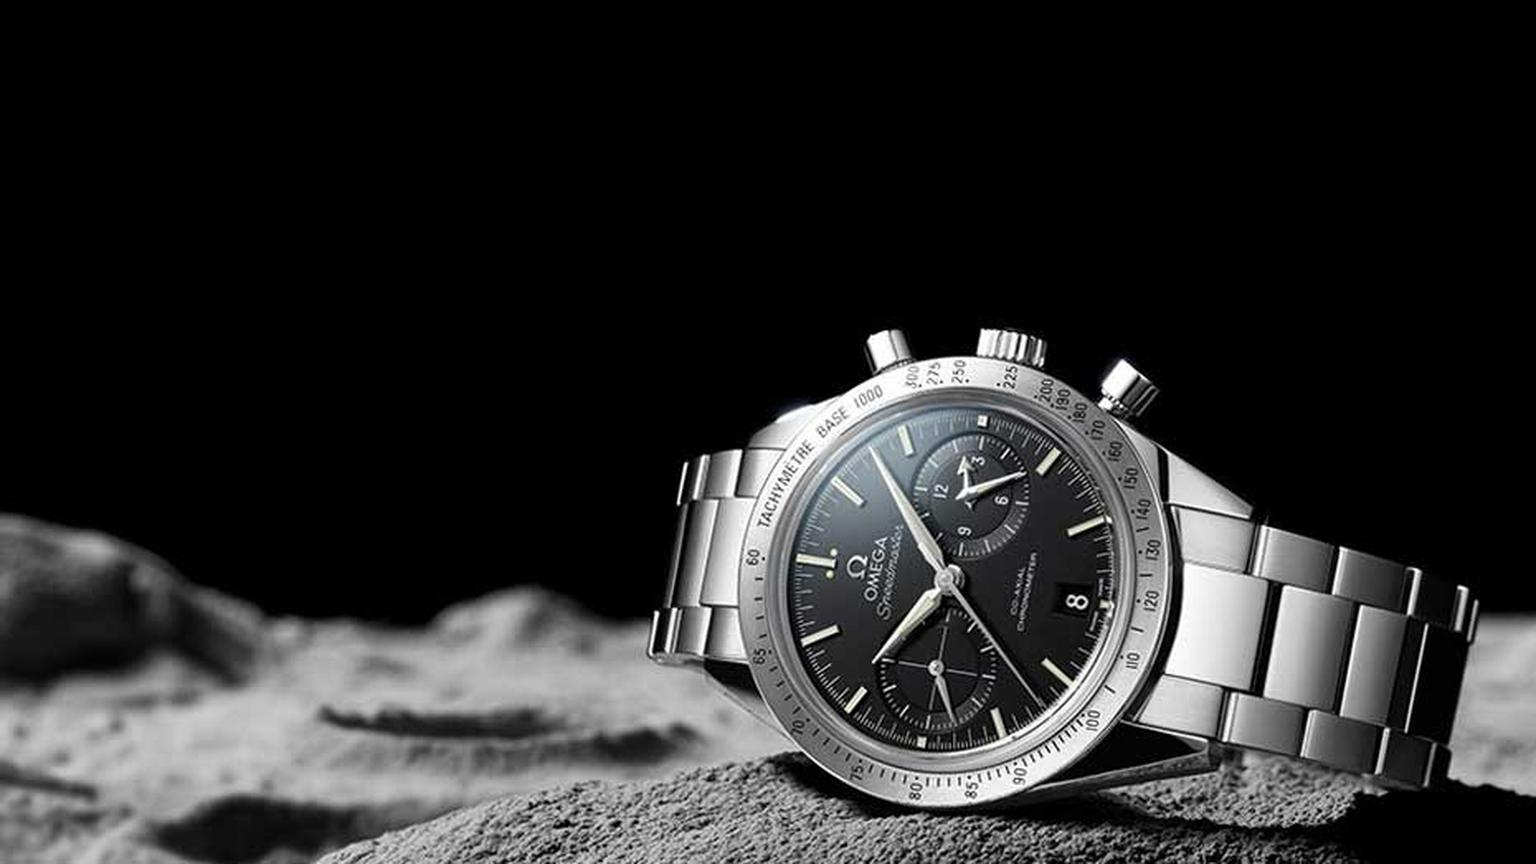 The legendary Omega Speedmaster watch has played a stellar role in man's quest to conquer aerospace as the first - and still the only - watch to have been to the Moon.